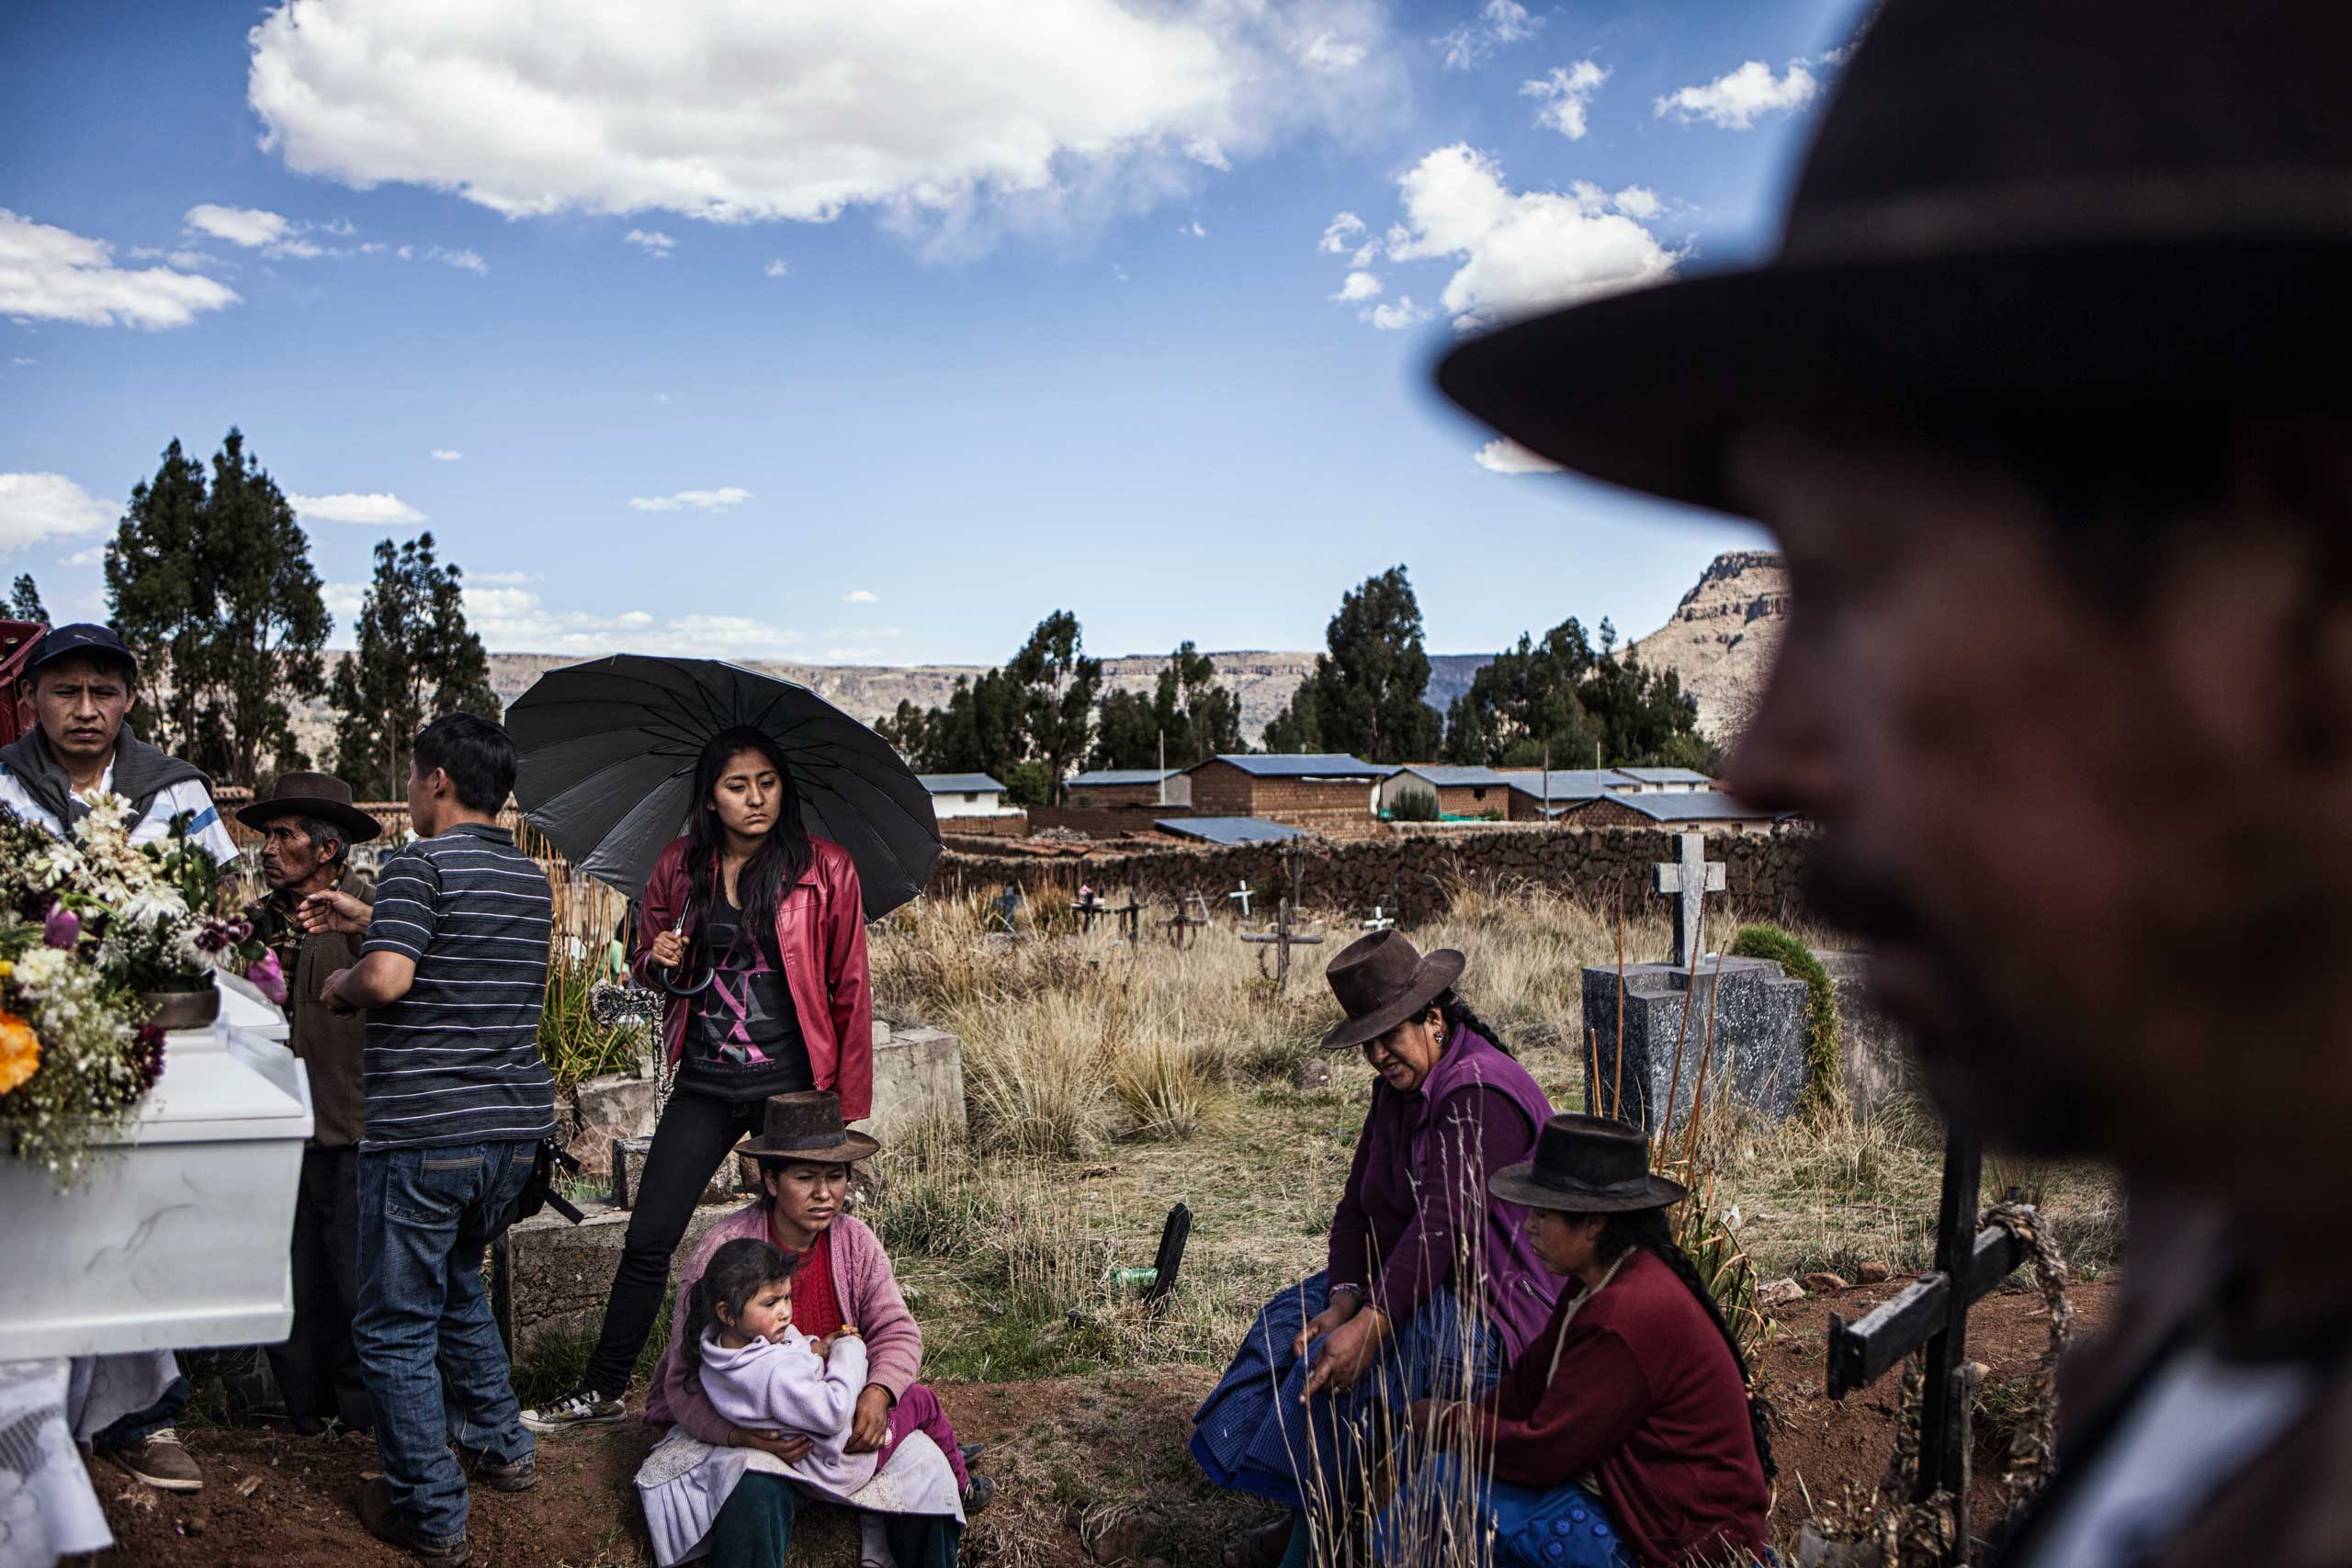 Al Jazeera: Peru: Searching for the missing decades after warLibia's children traveled from as far away as  Lima to take part in their father' s  funeral at a mass burial in Huancasancos.